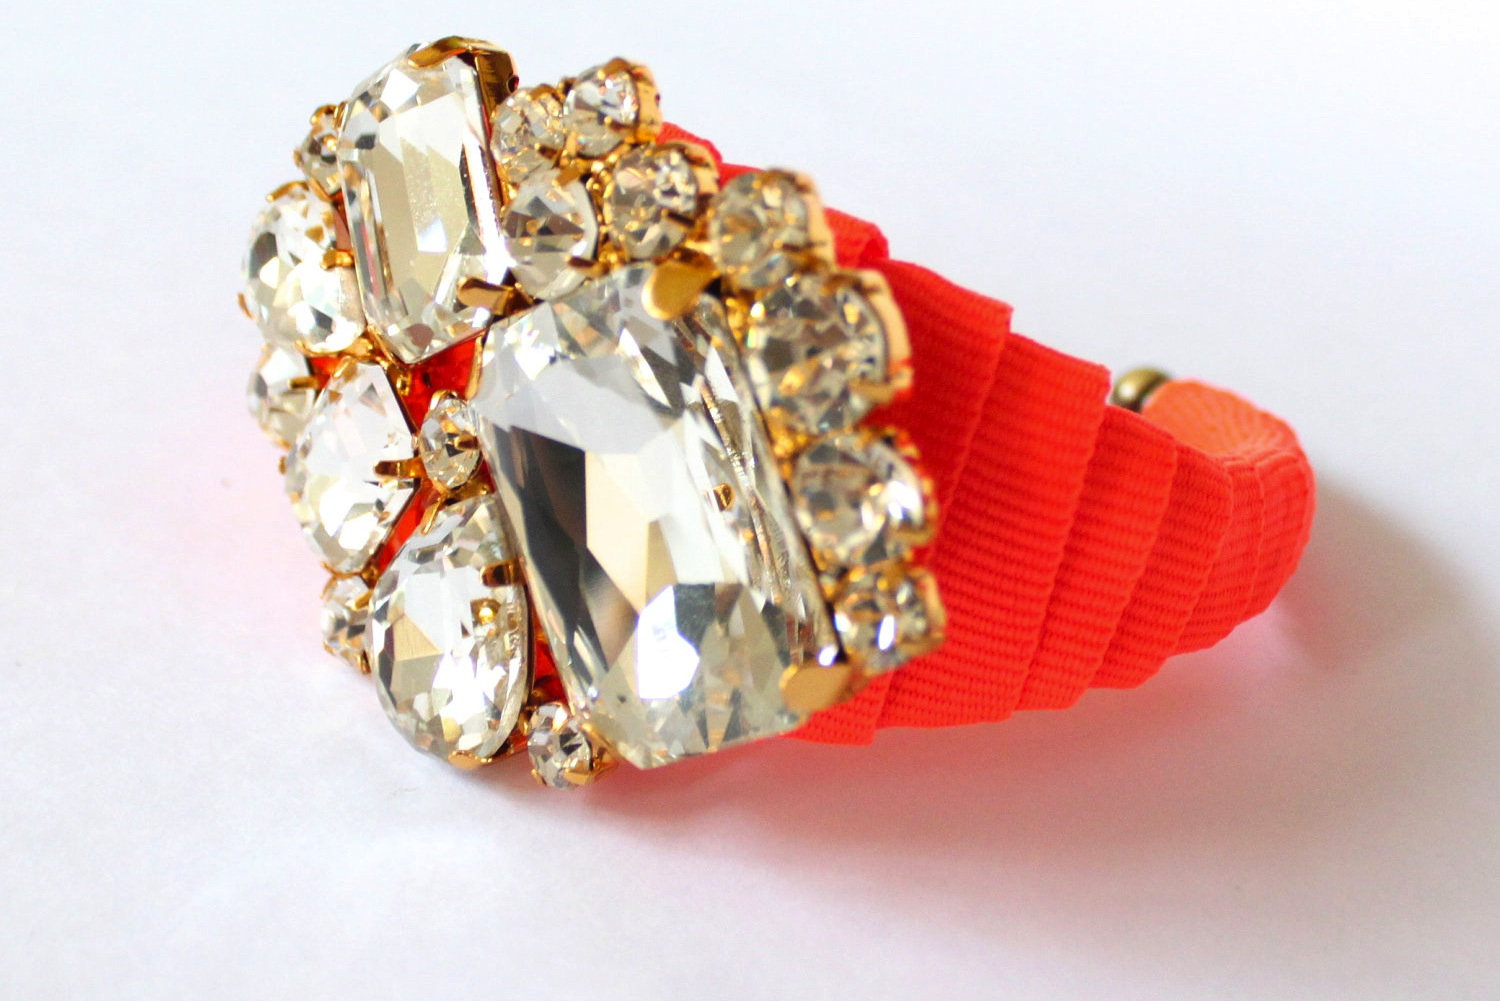 Bejeweled-bride-wedding-accessories-neon-coral-bracelet.original